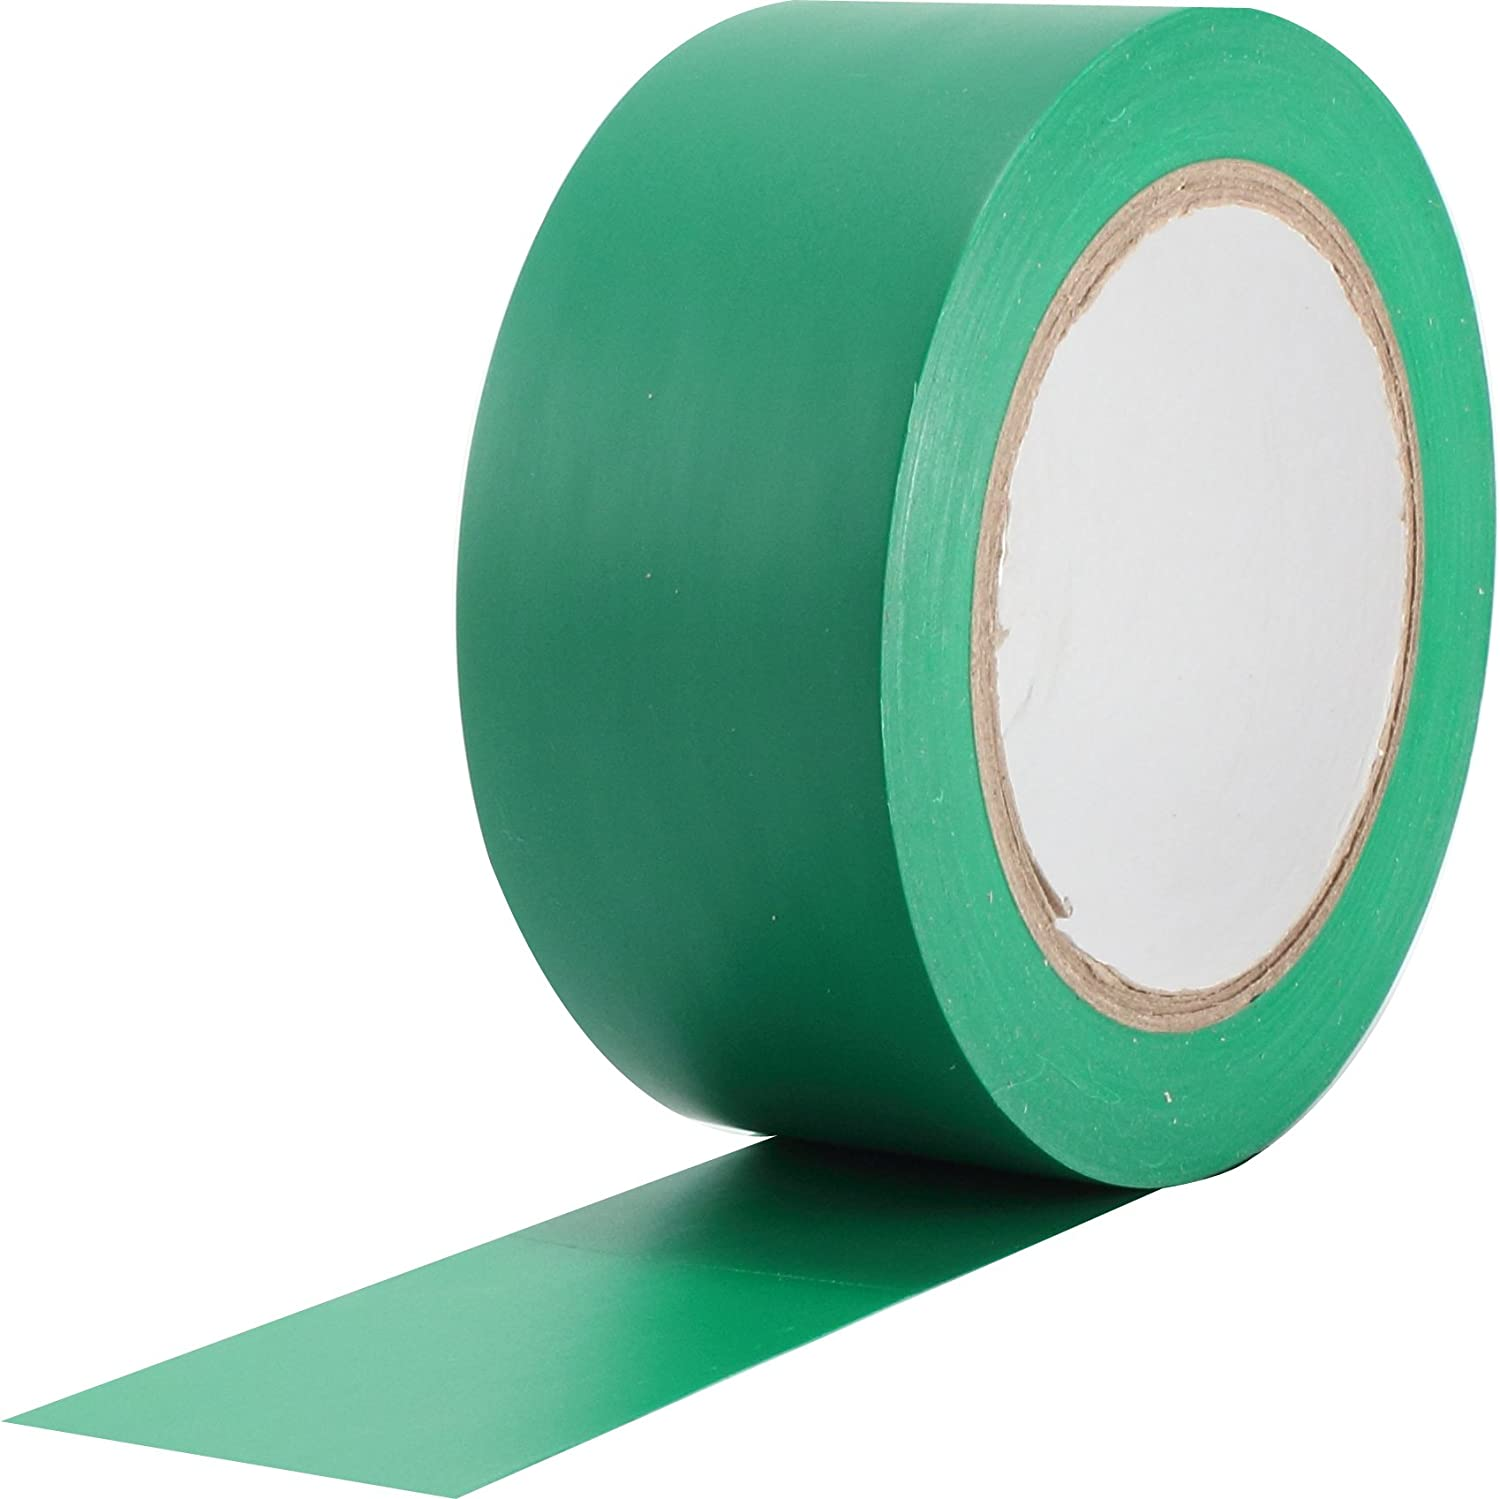 ProTapes Pro 50 Premium Vinyl Safety Marking and Dance Floor Splicing Tape 6 mils Thick 36 yds Length x 3 Width ProTapes /& Specialties 50-6-3x36-GR Pack of 1 36 yds Length x 3 Width Green